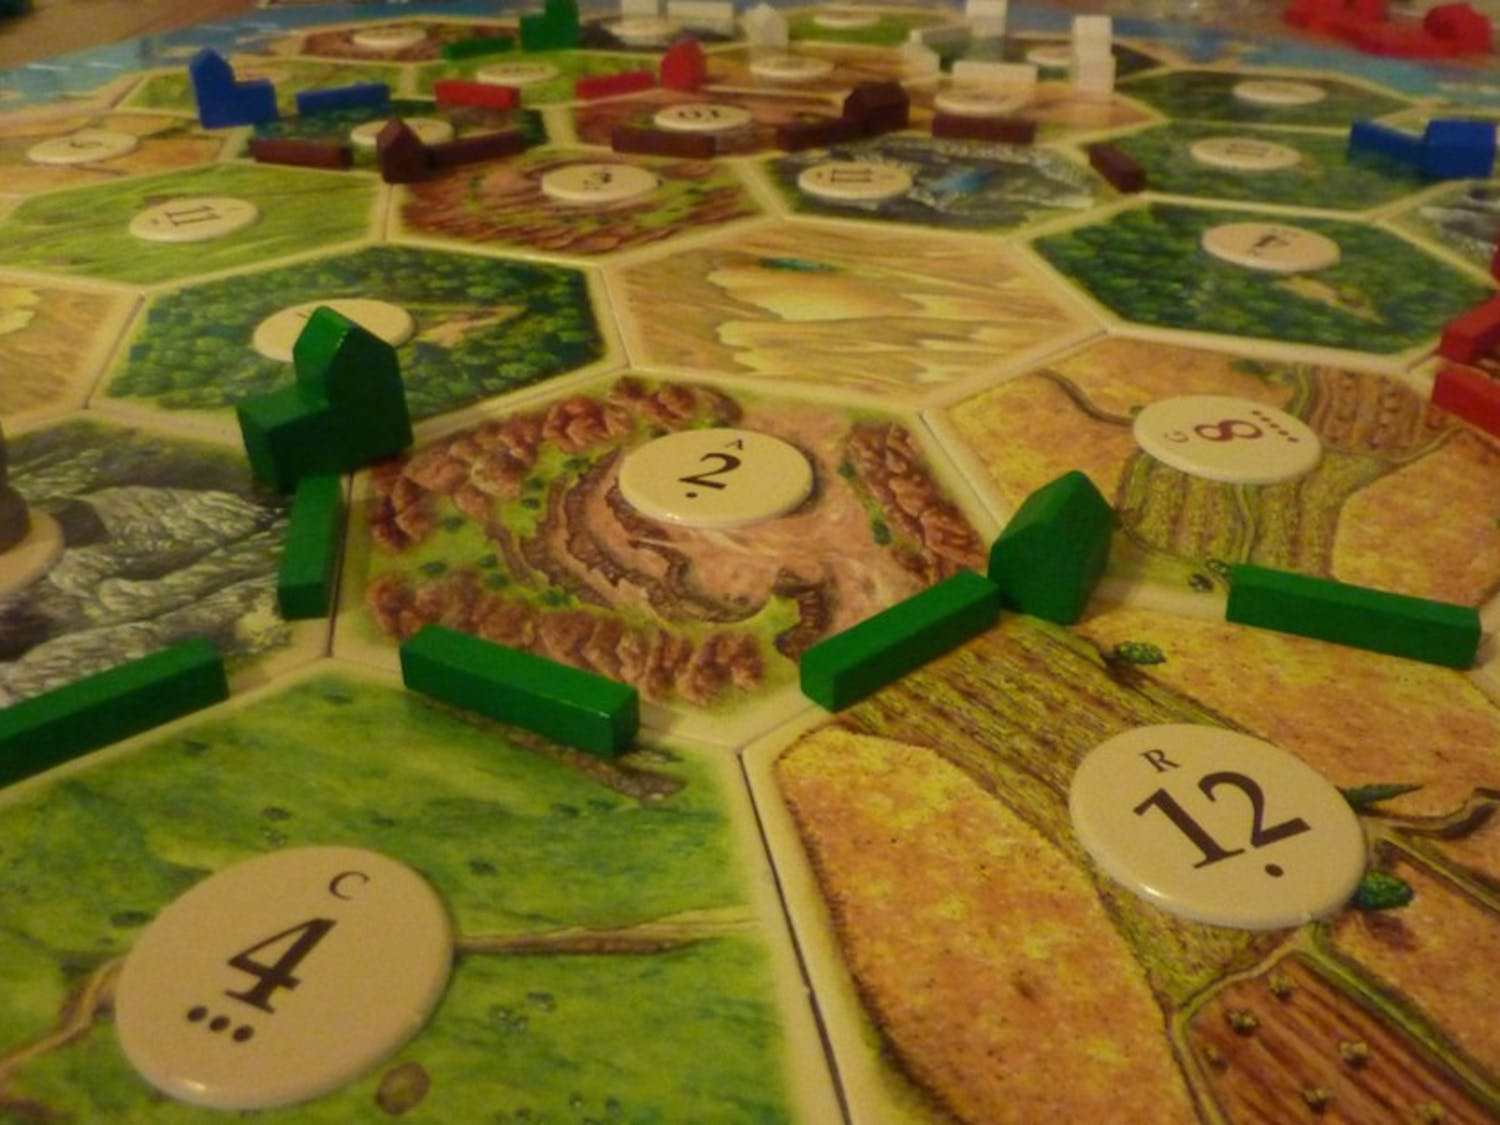 Settlers of  Catan was first published in Germany in 1995 and as of 2015 has sold over 22 million copies in 30 different languages.